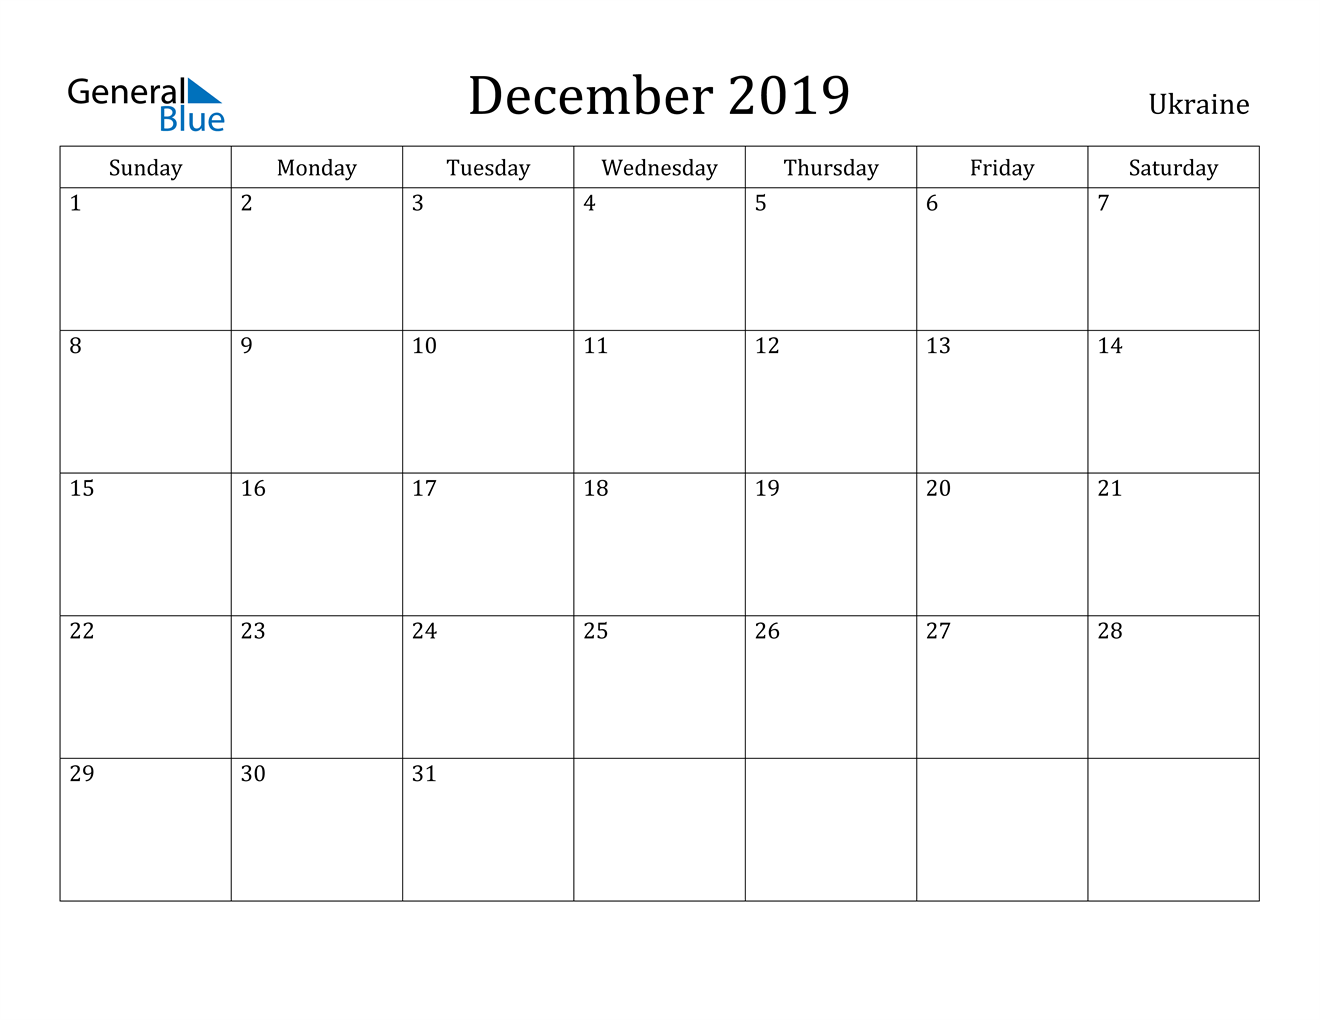 Image of December 2019 Ukraine Calendar with Holidays Calendar